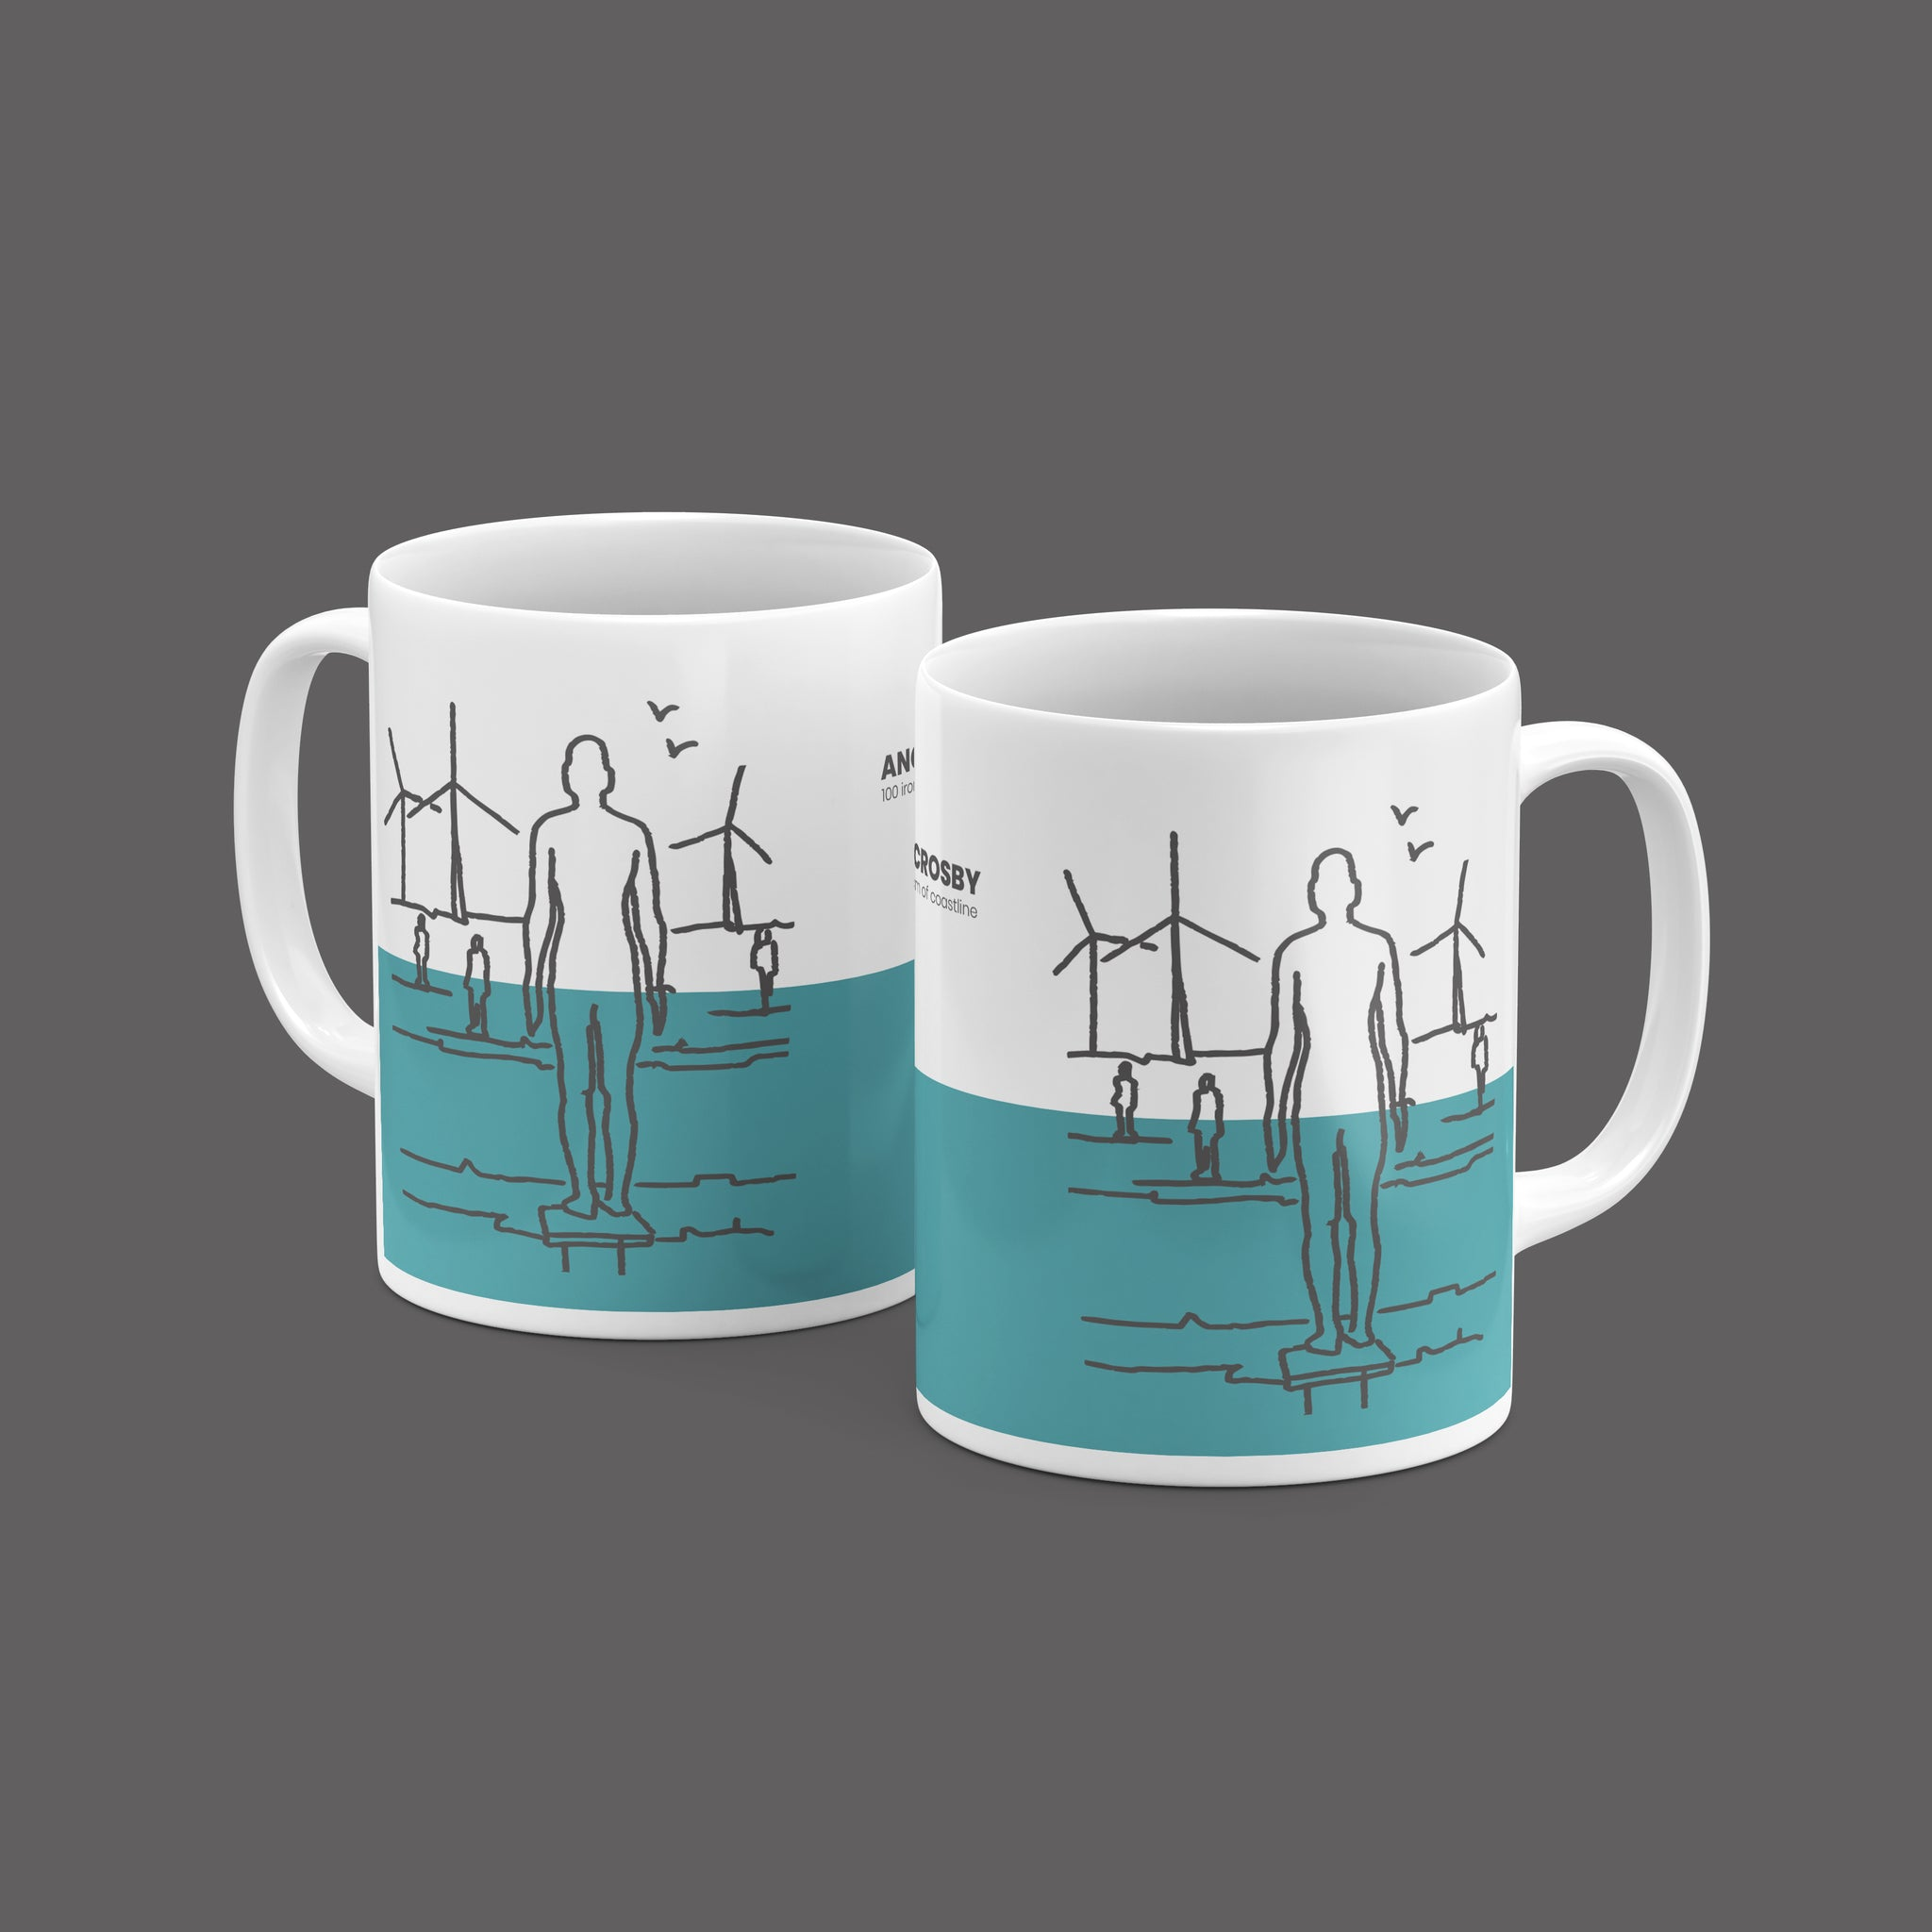 Liverpool -  Another Place Mug